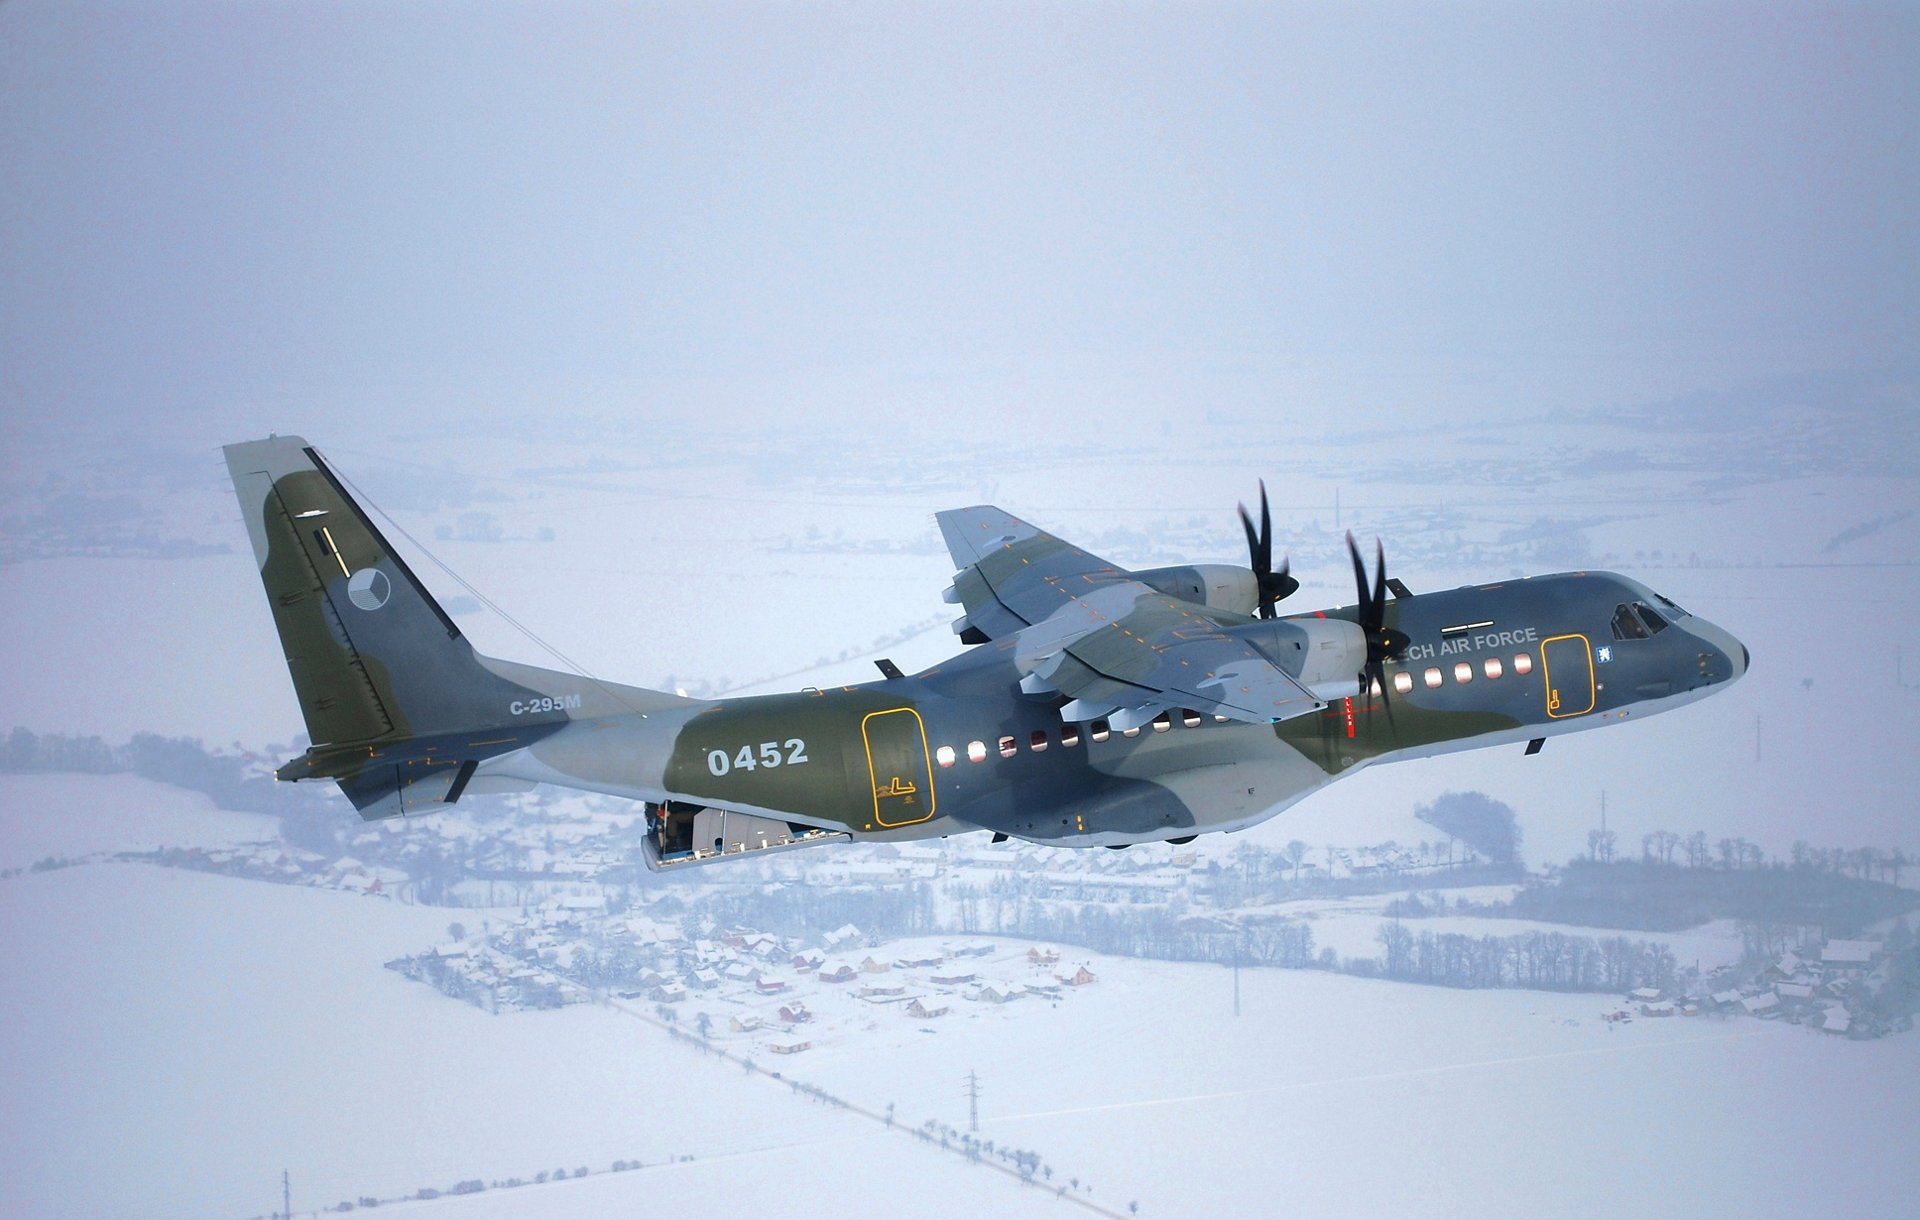 Czech Air Force's Airbus C295 medium airlifter in flight. The aircraft is equipped with winglets in transport configuration.